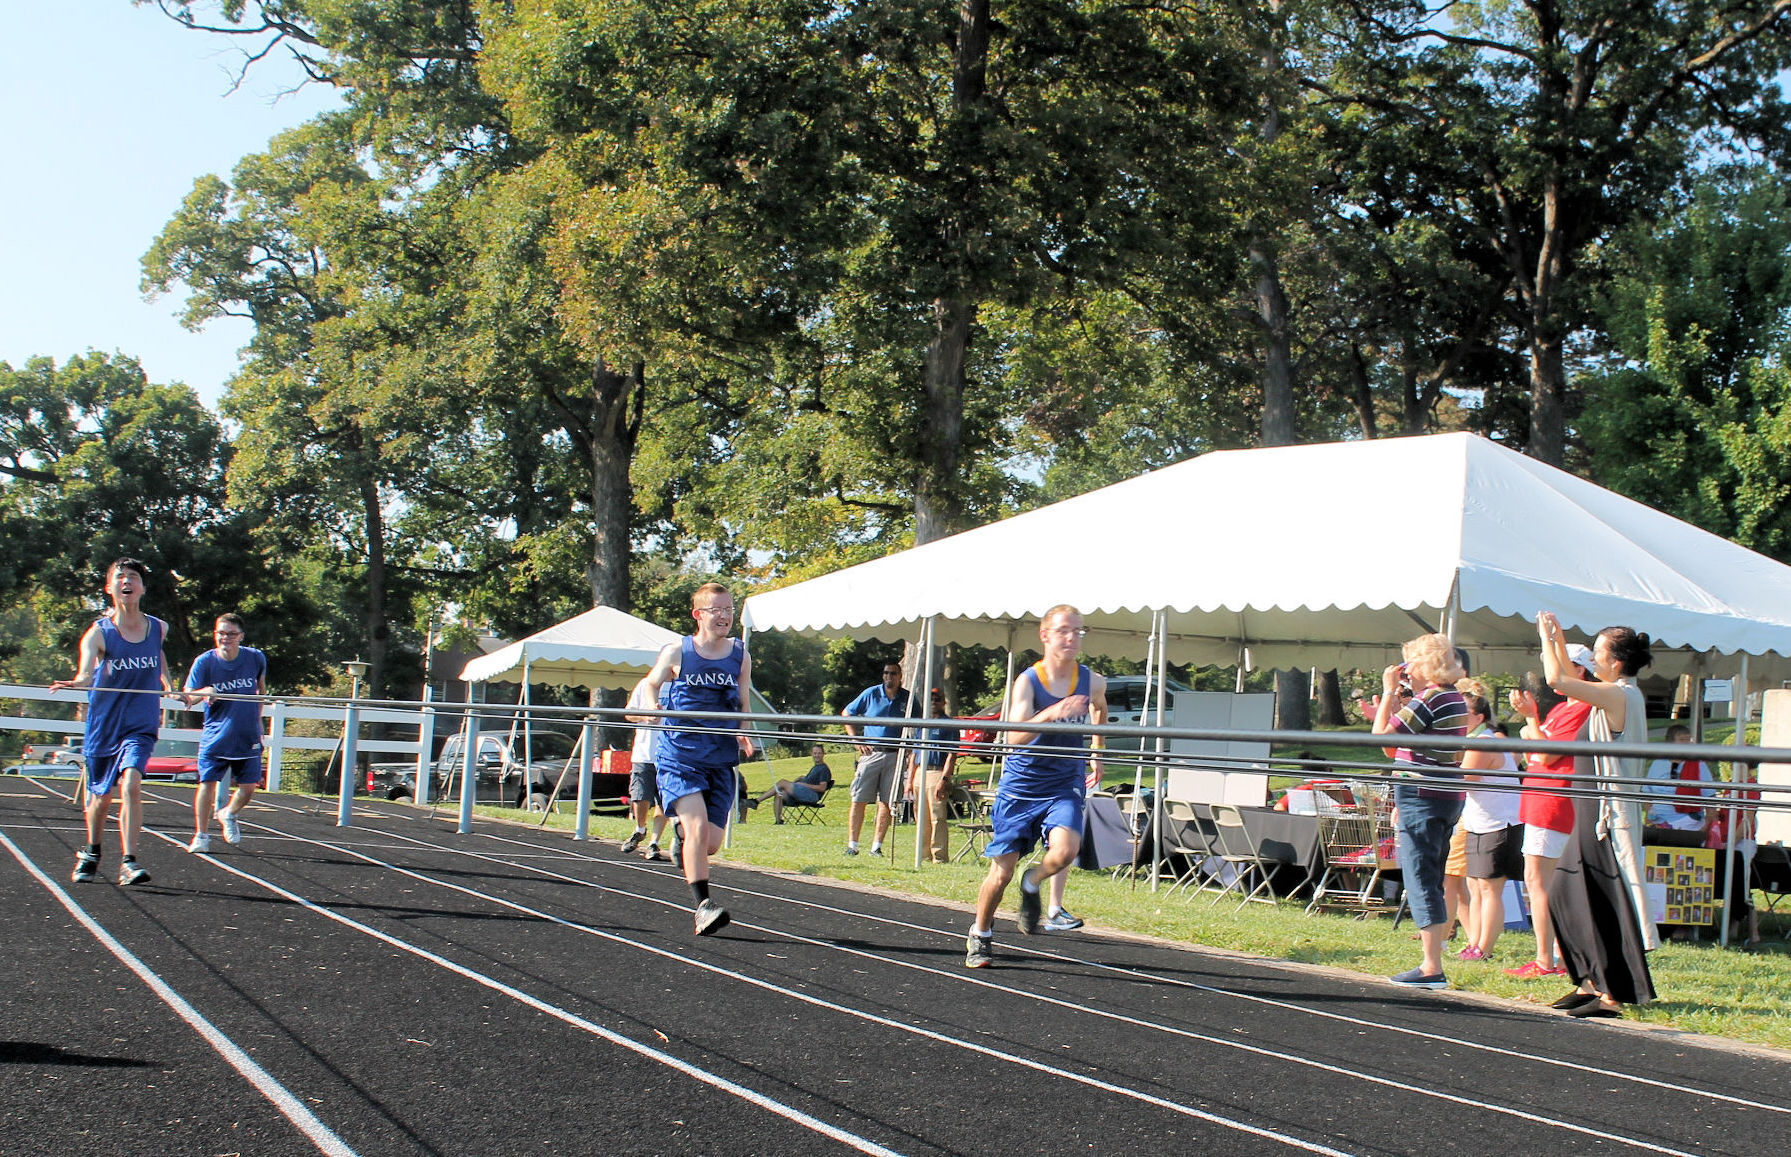 4 male students wearing blue track uniforms are racing on the track.